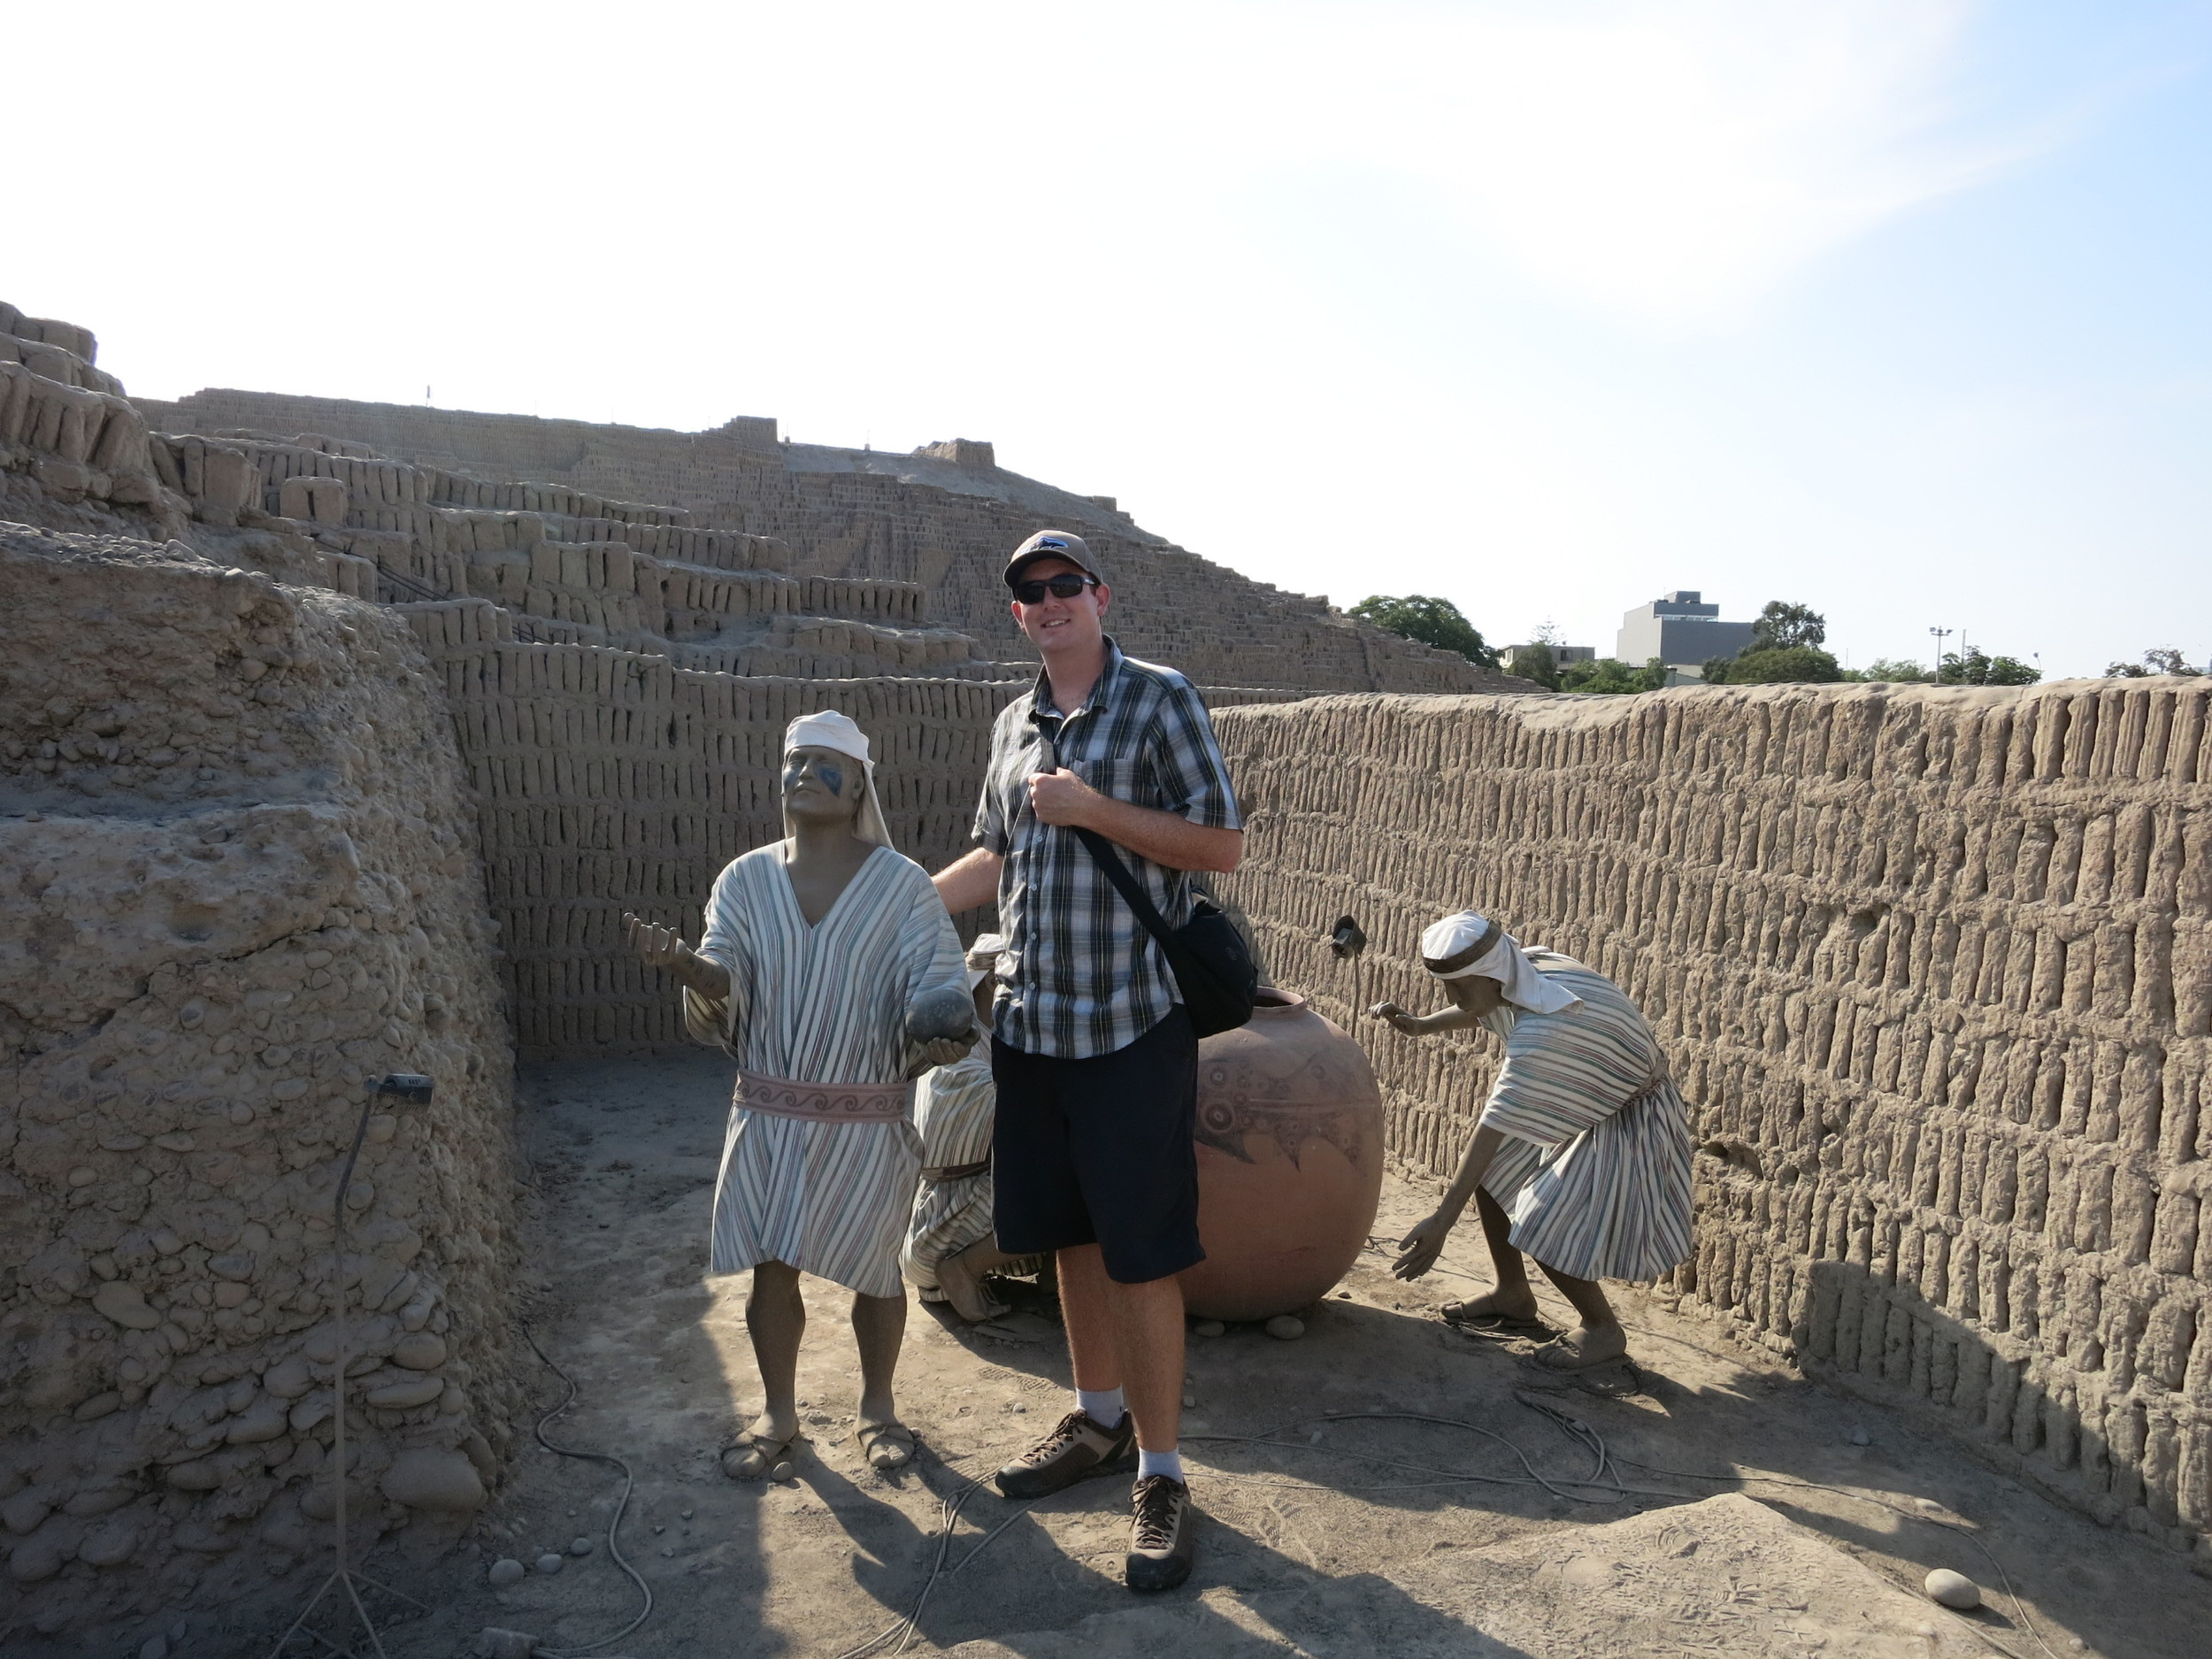 At Huaca Pucllana, Eric demonstrates how little the people were!